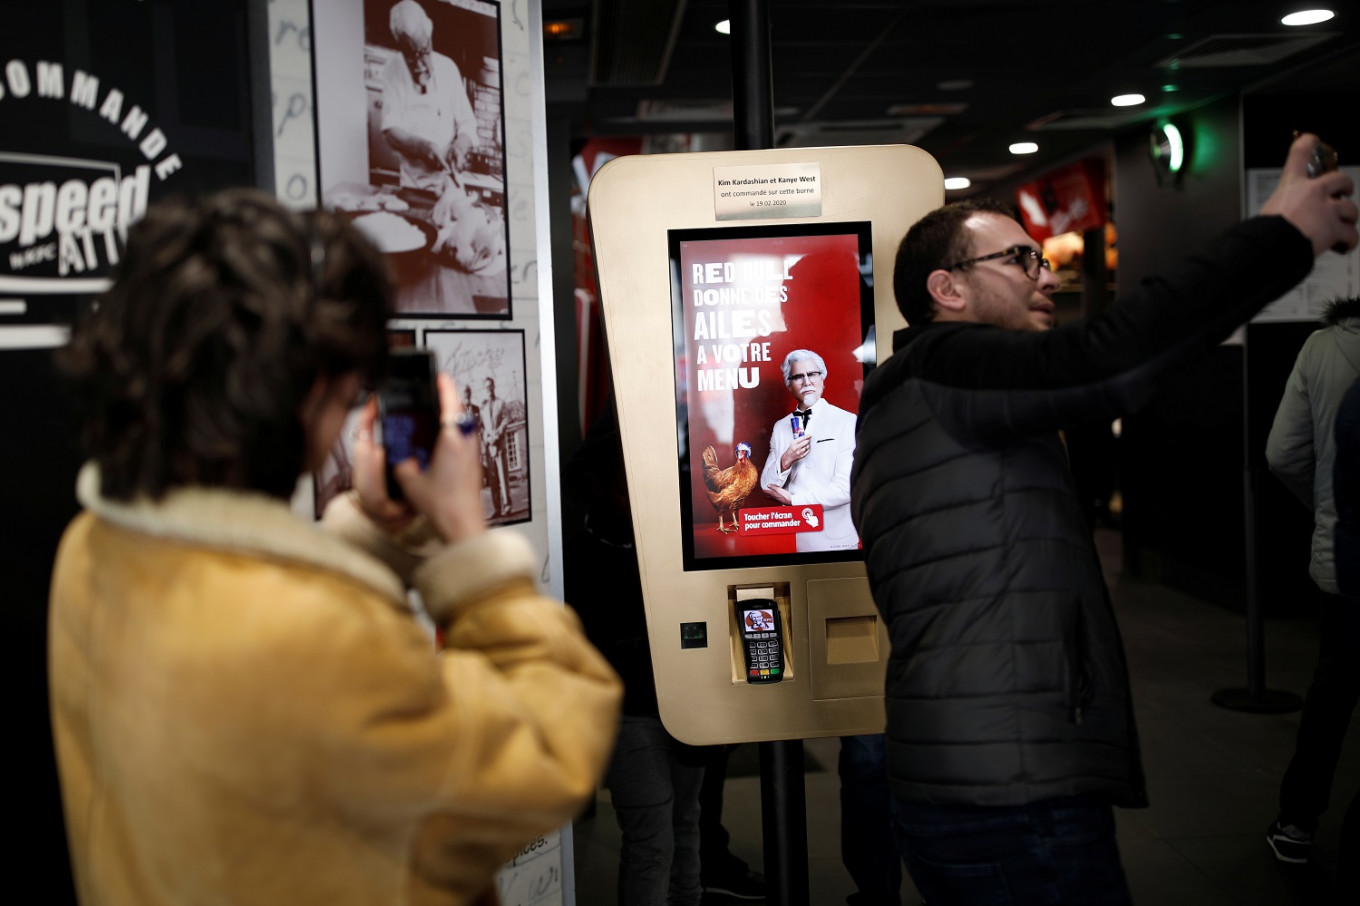 Paris fast food joint revels in Kim and Kanye's visit